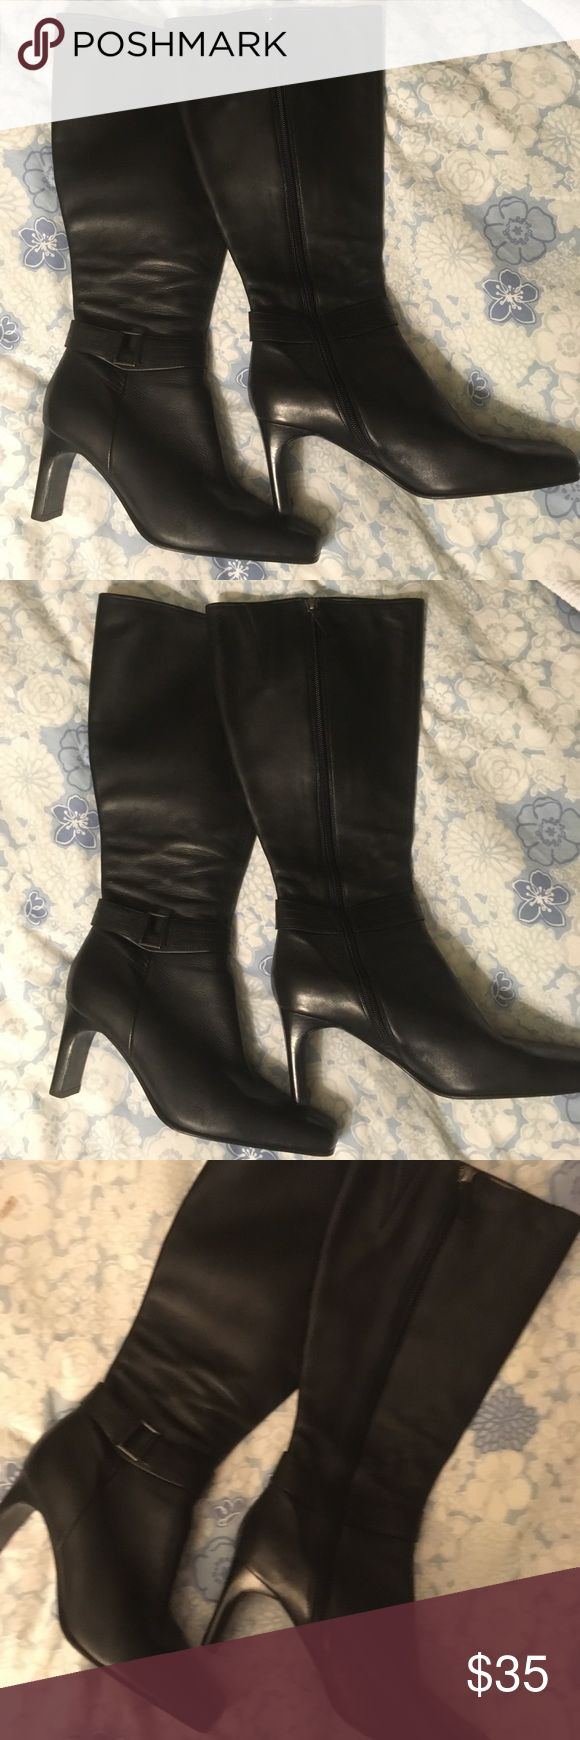 Women's Marks & Spencer's Tall Boot Women's Marks & Spencer's Tall Boot, Black, Size 10. Very gently used. Marks & Spencer Shoes Heeled Boots